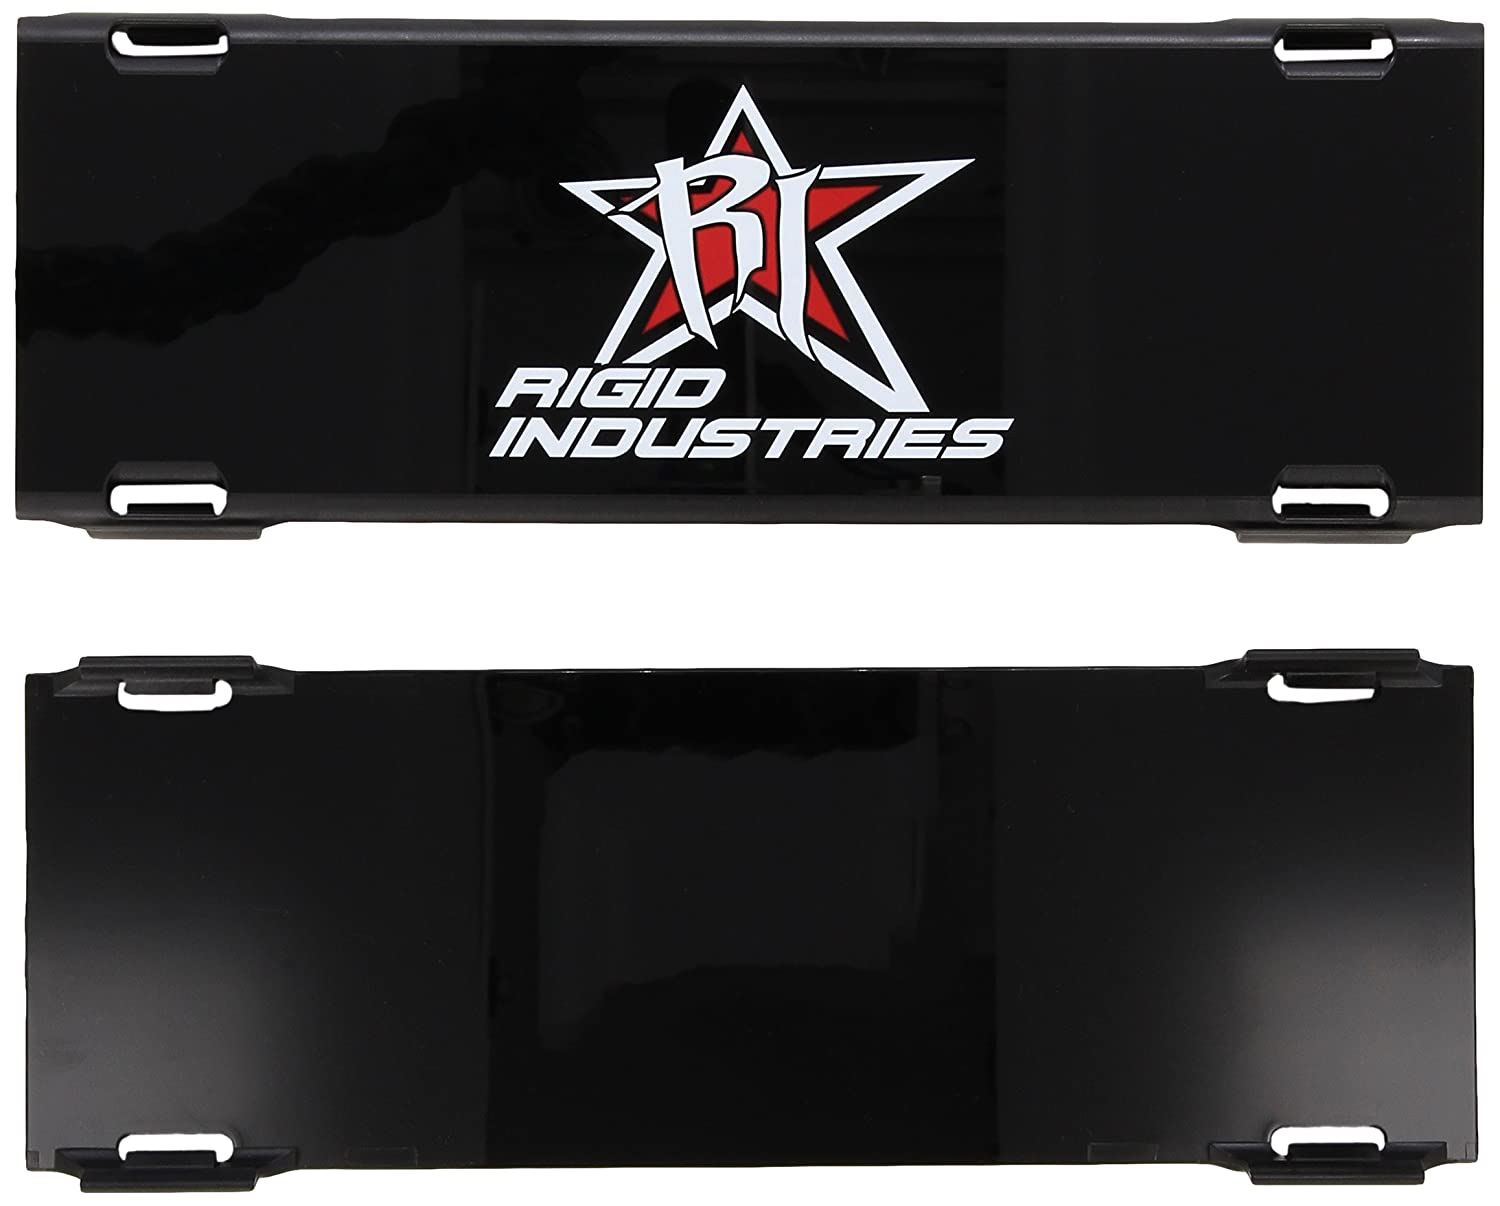 Rigid industries 12091 e series black 20 light cover full car rigid industries 12091 e series black 20 light cover full car covers amazon canada aloadofball Image collections